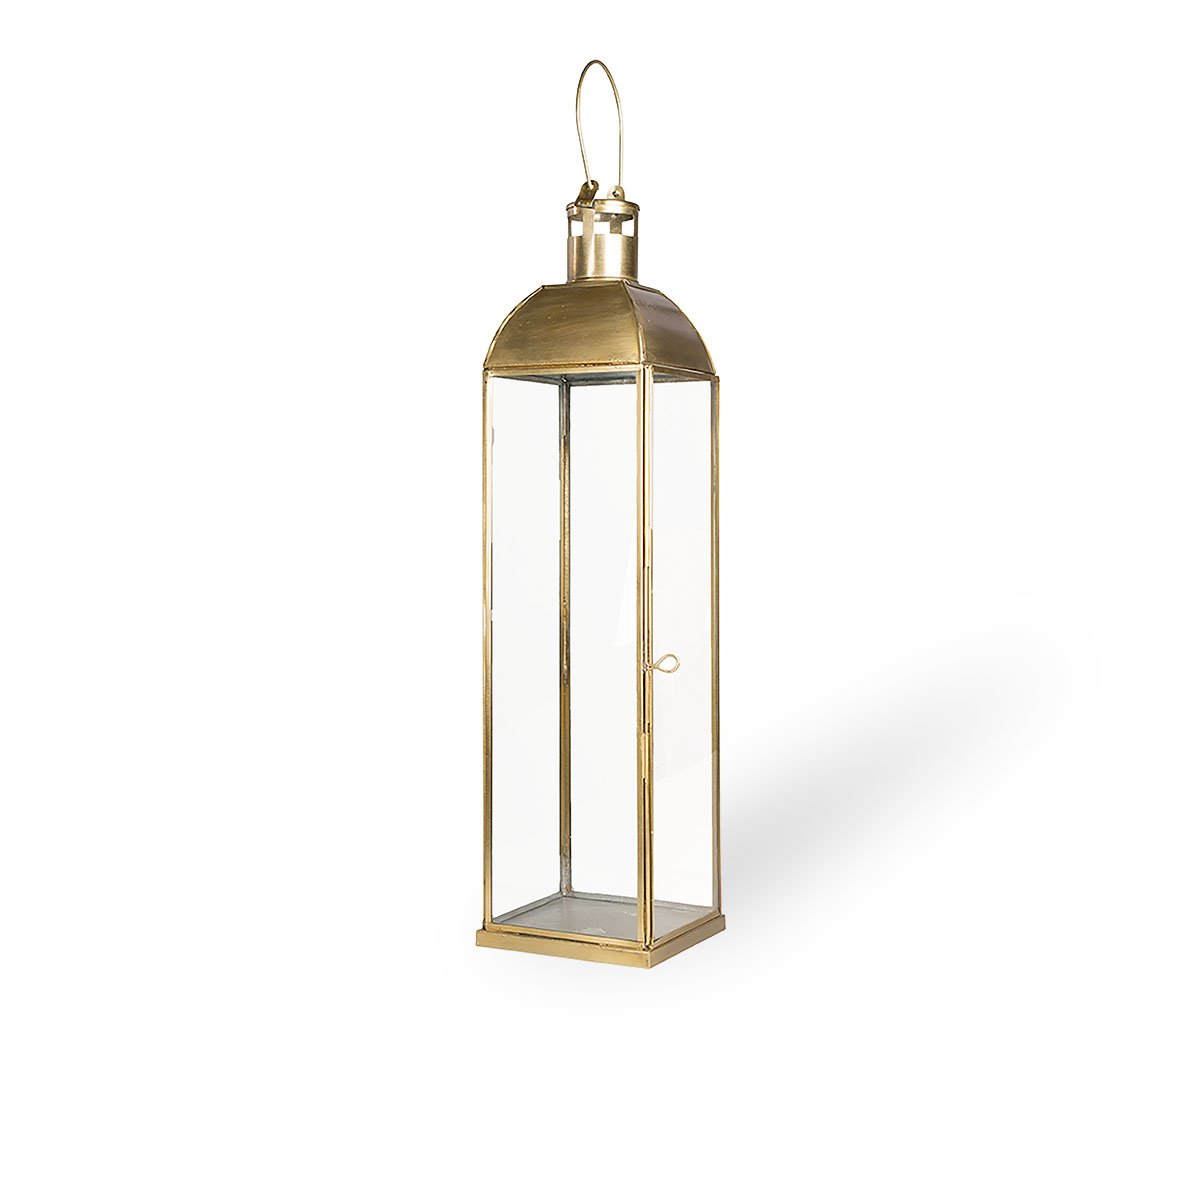 Sika Design Laterne Brass Groß Messing